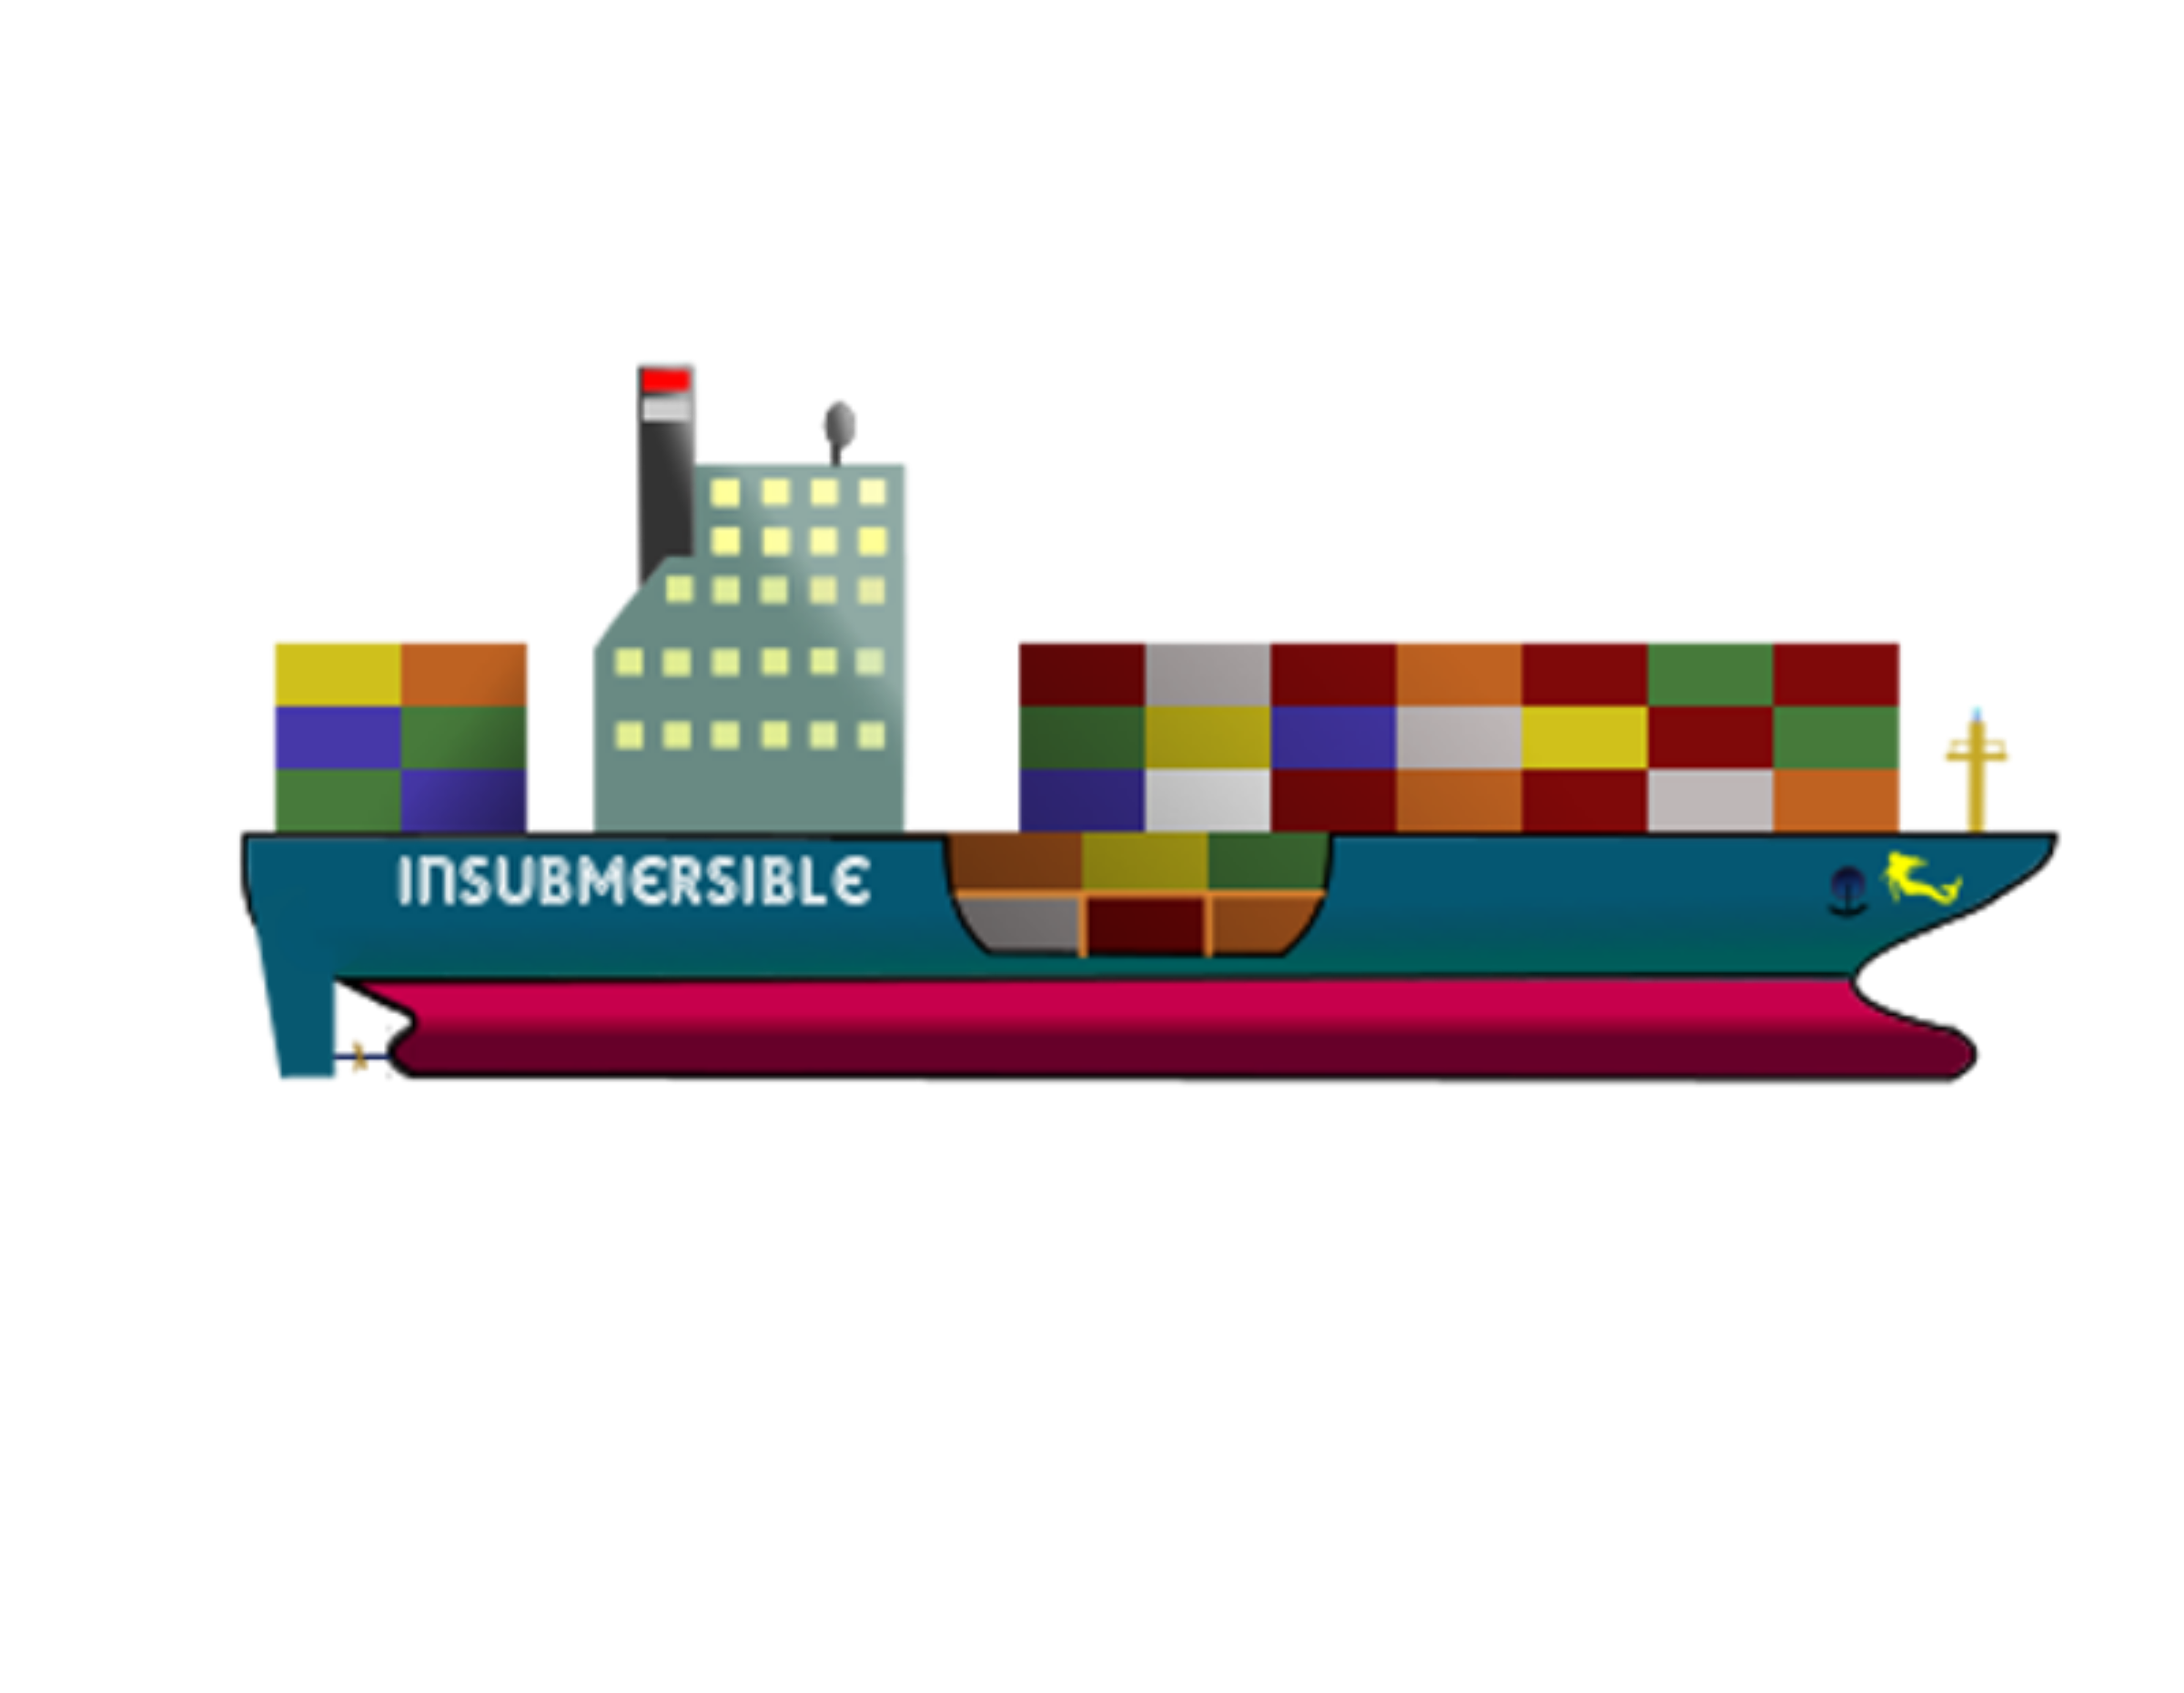 Container ship png. The insubmersible icons free